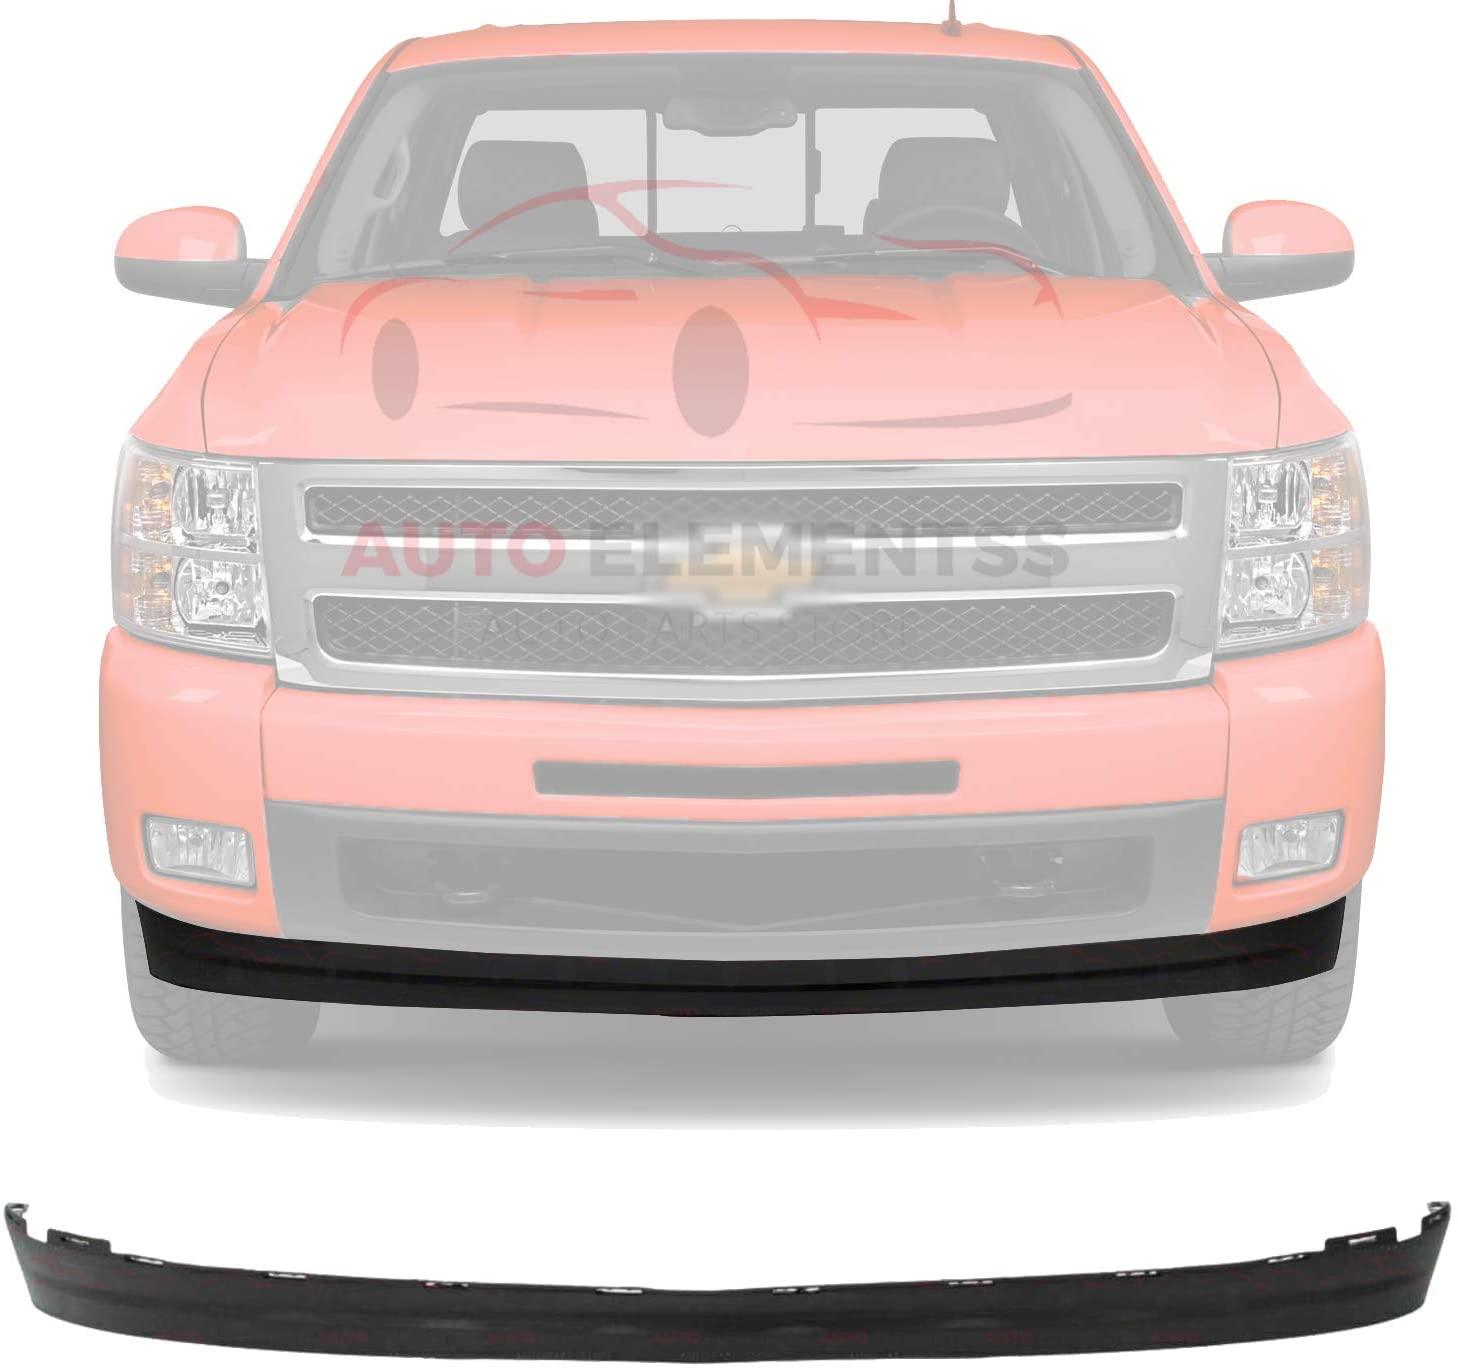 New Front Lower Valance Deflector Extension Textured Plastic For 2007-2013 Chevrolet Silverado 1500 Direct Replacement 25821880